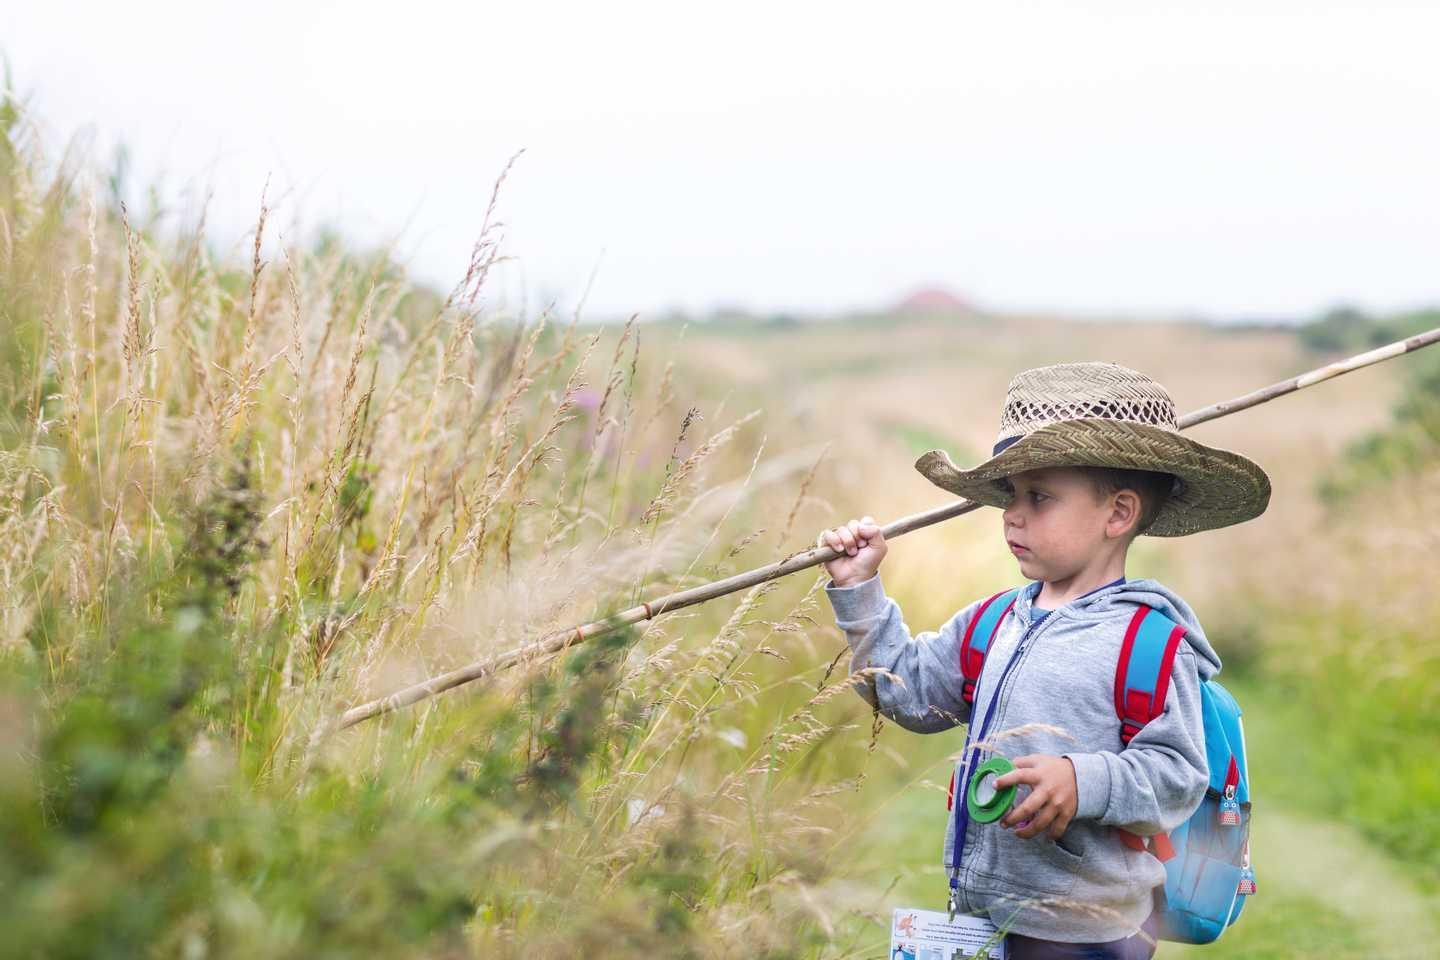 Child exploring the environment in cowboy hat